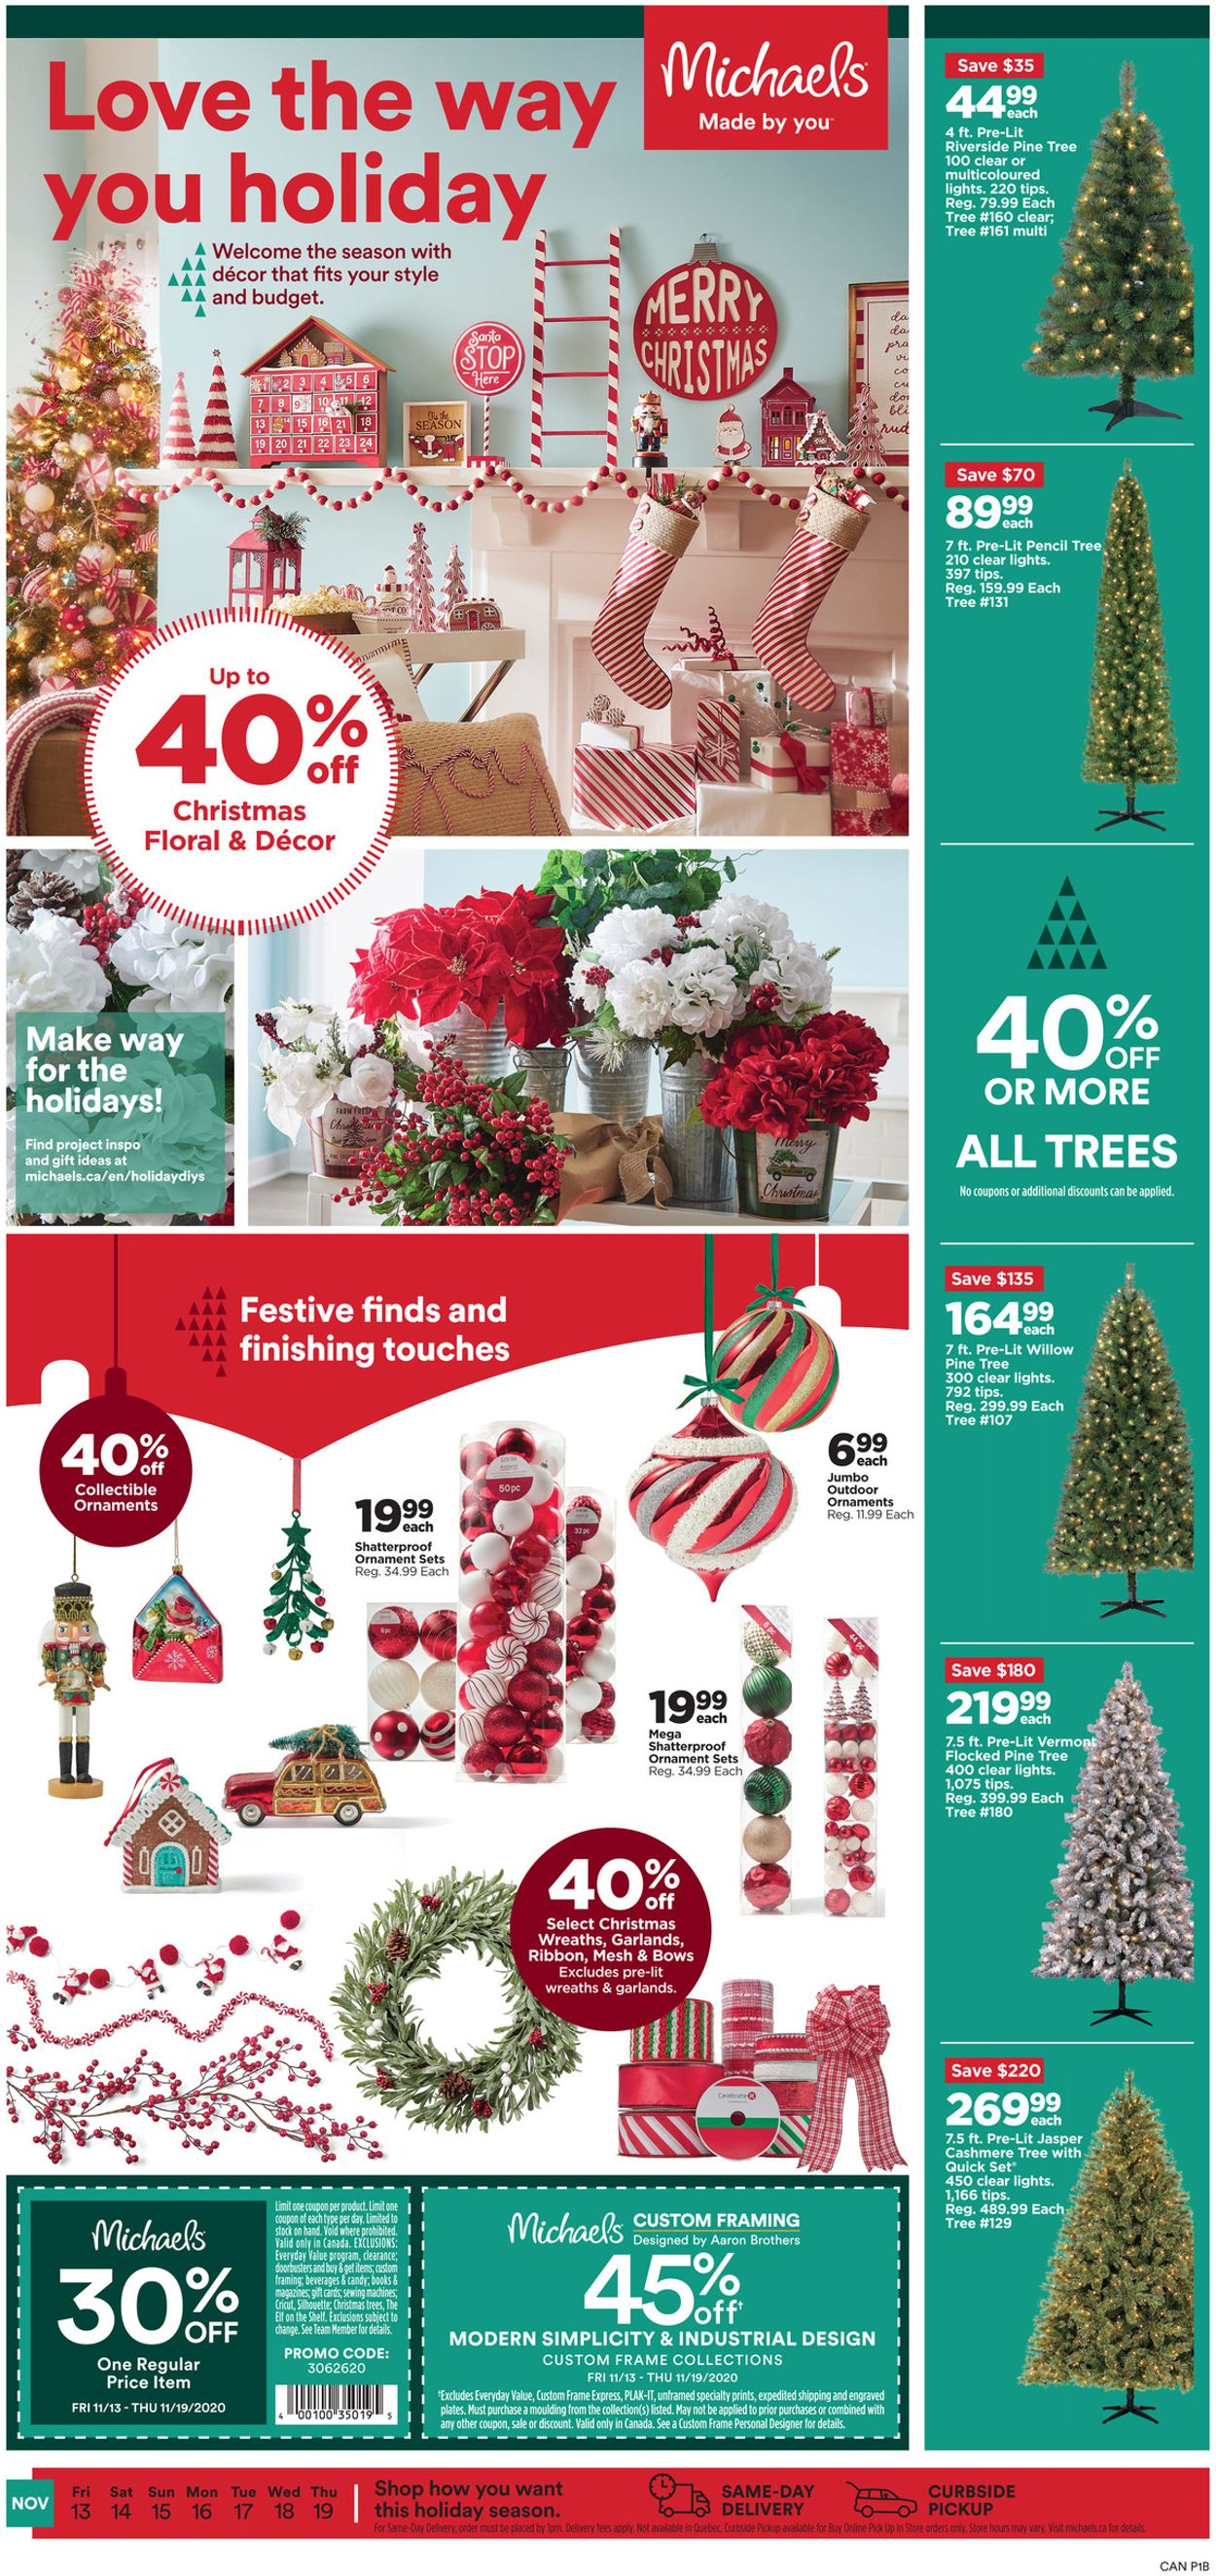 Michaels - Holiday 2020 Flyer - 11/13-11/19/2020